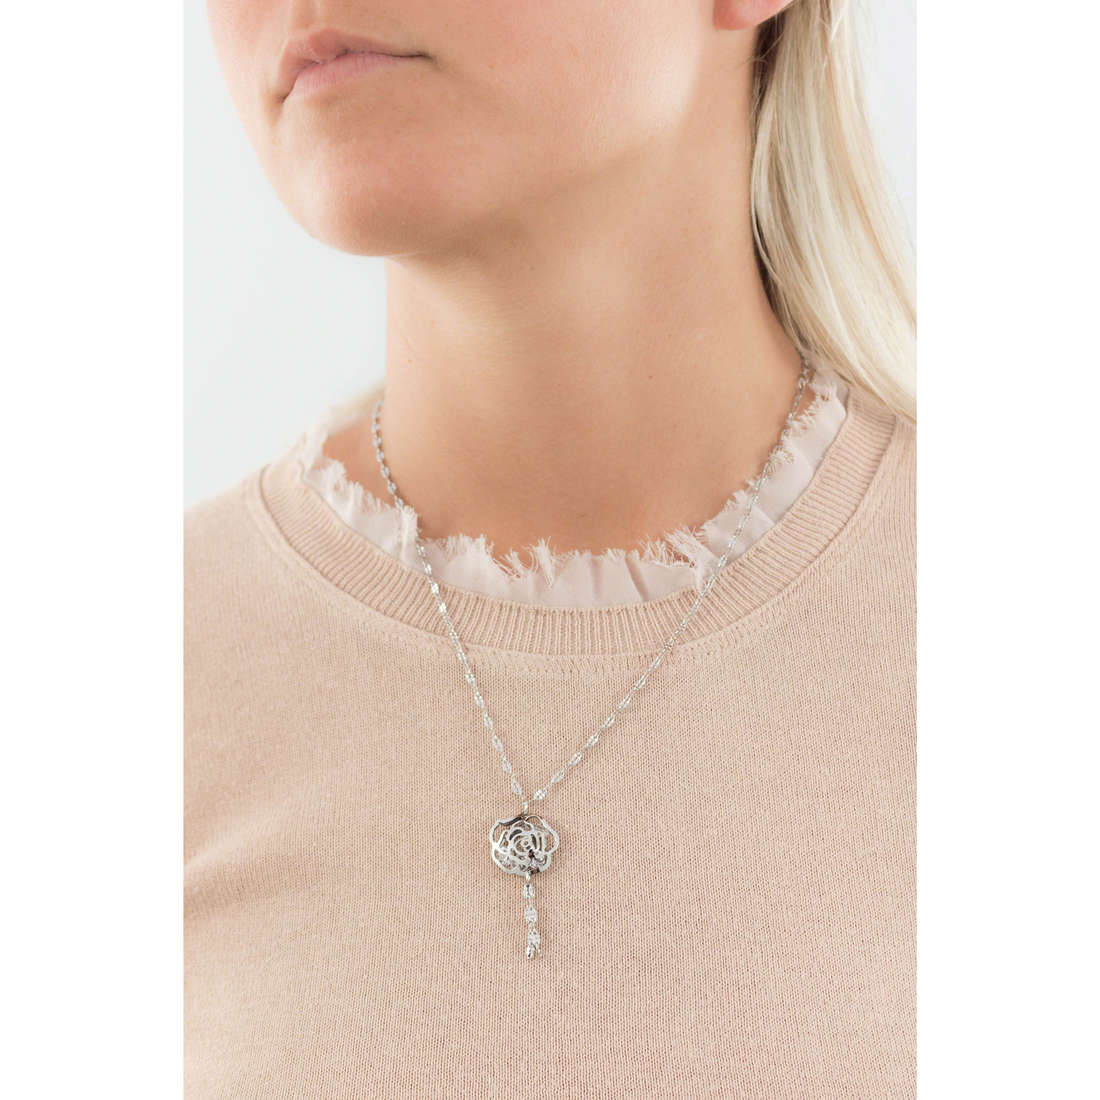 Marlù necklaces Woman Chic woman 2CN0037 indosso